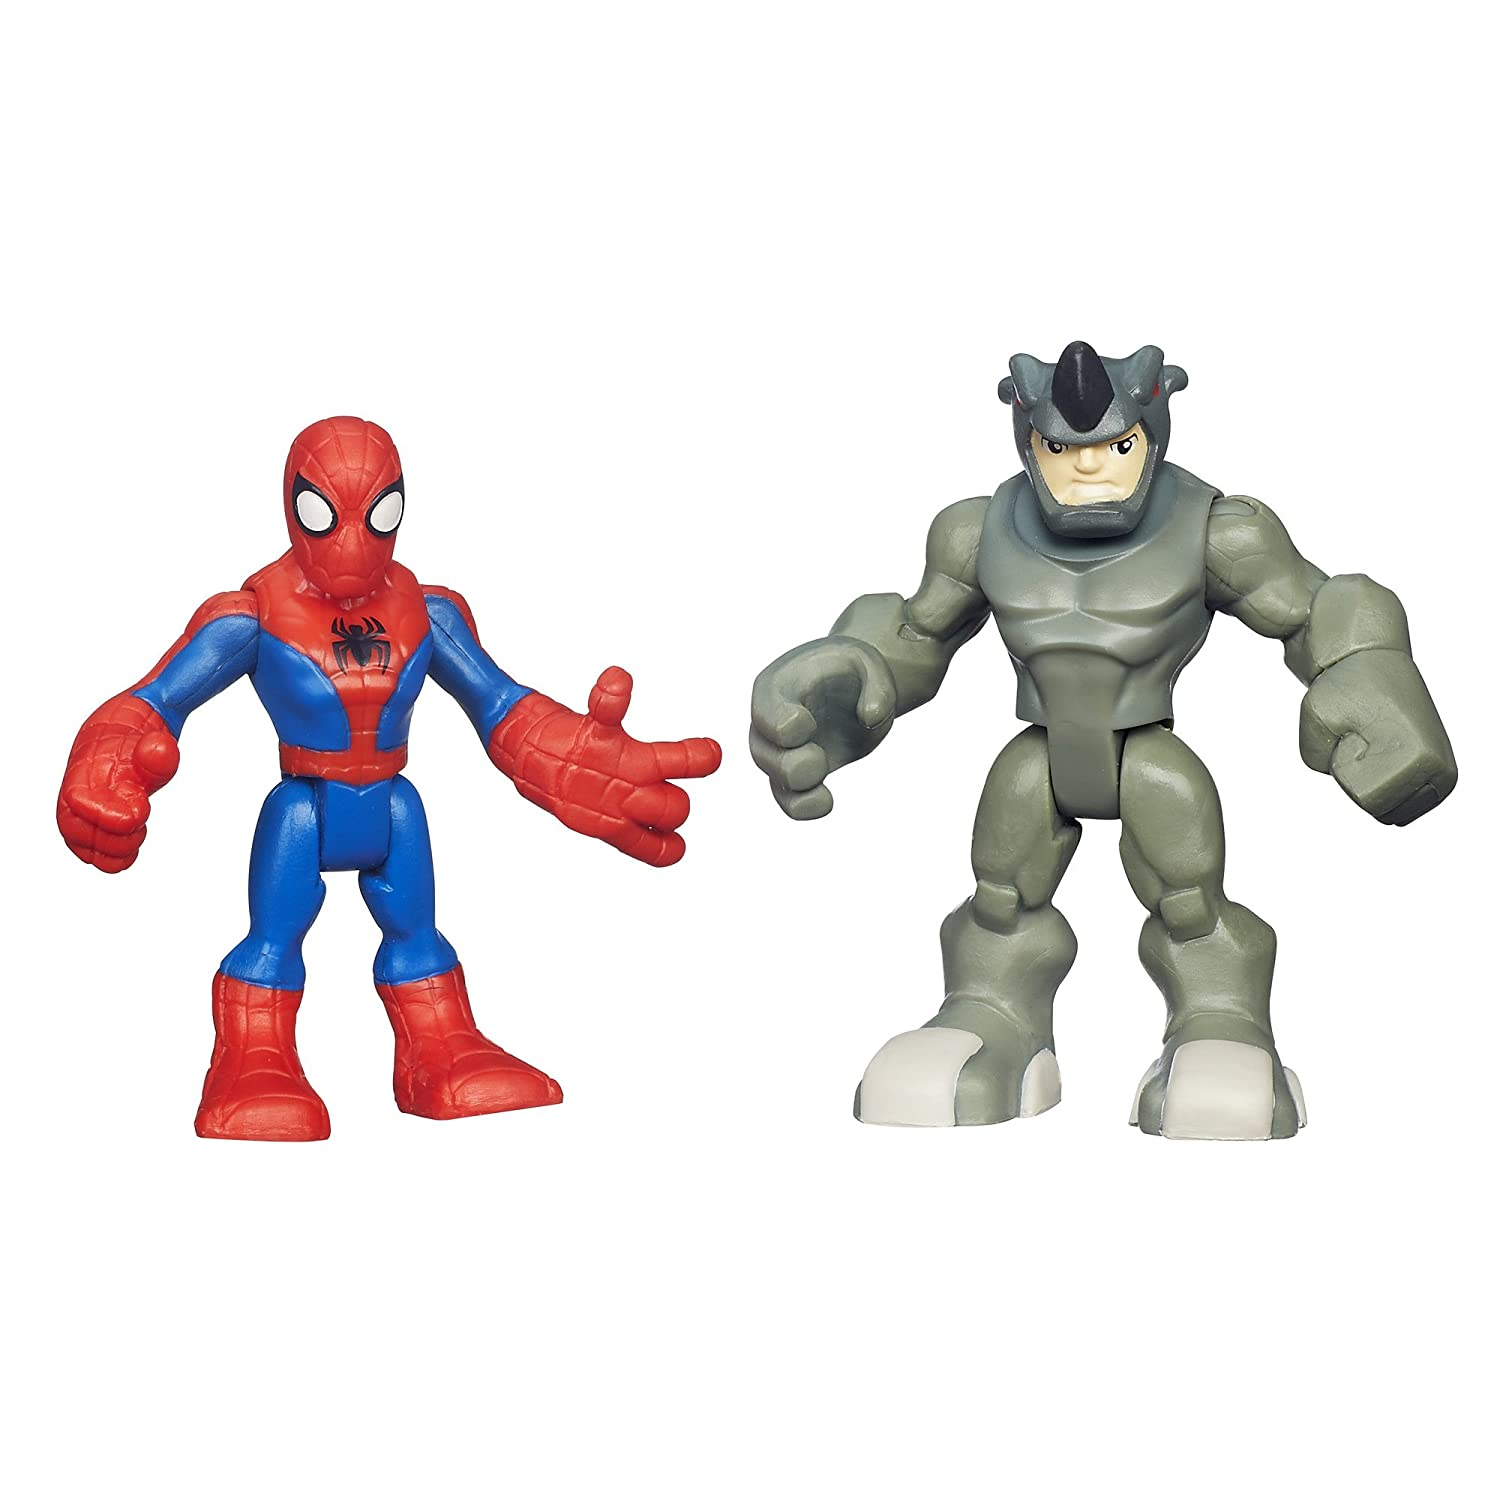 Playskool Heroes Spider-Man and Rhino Figures Hasbro Canada Corporation A7113